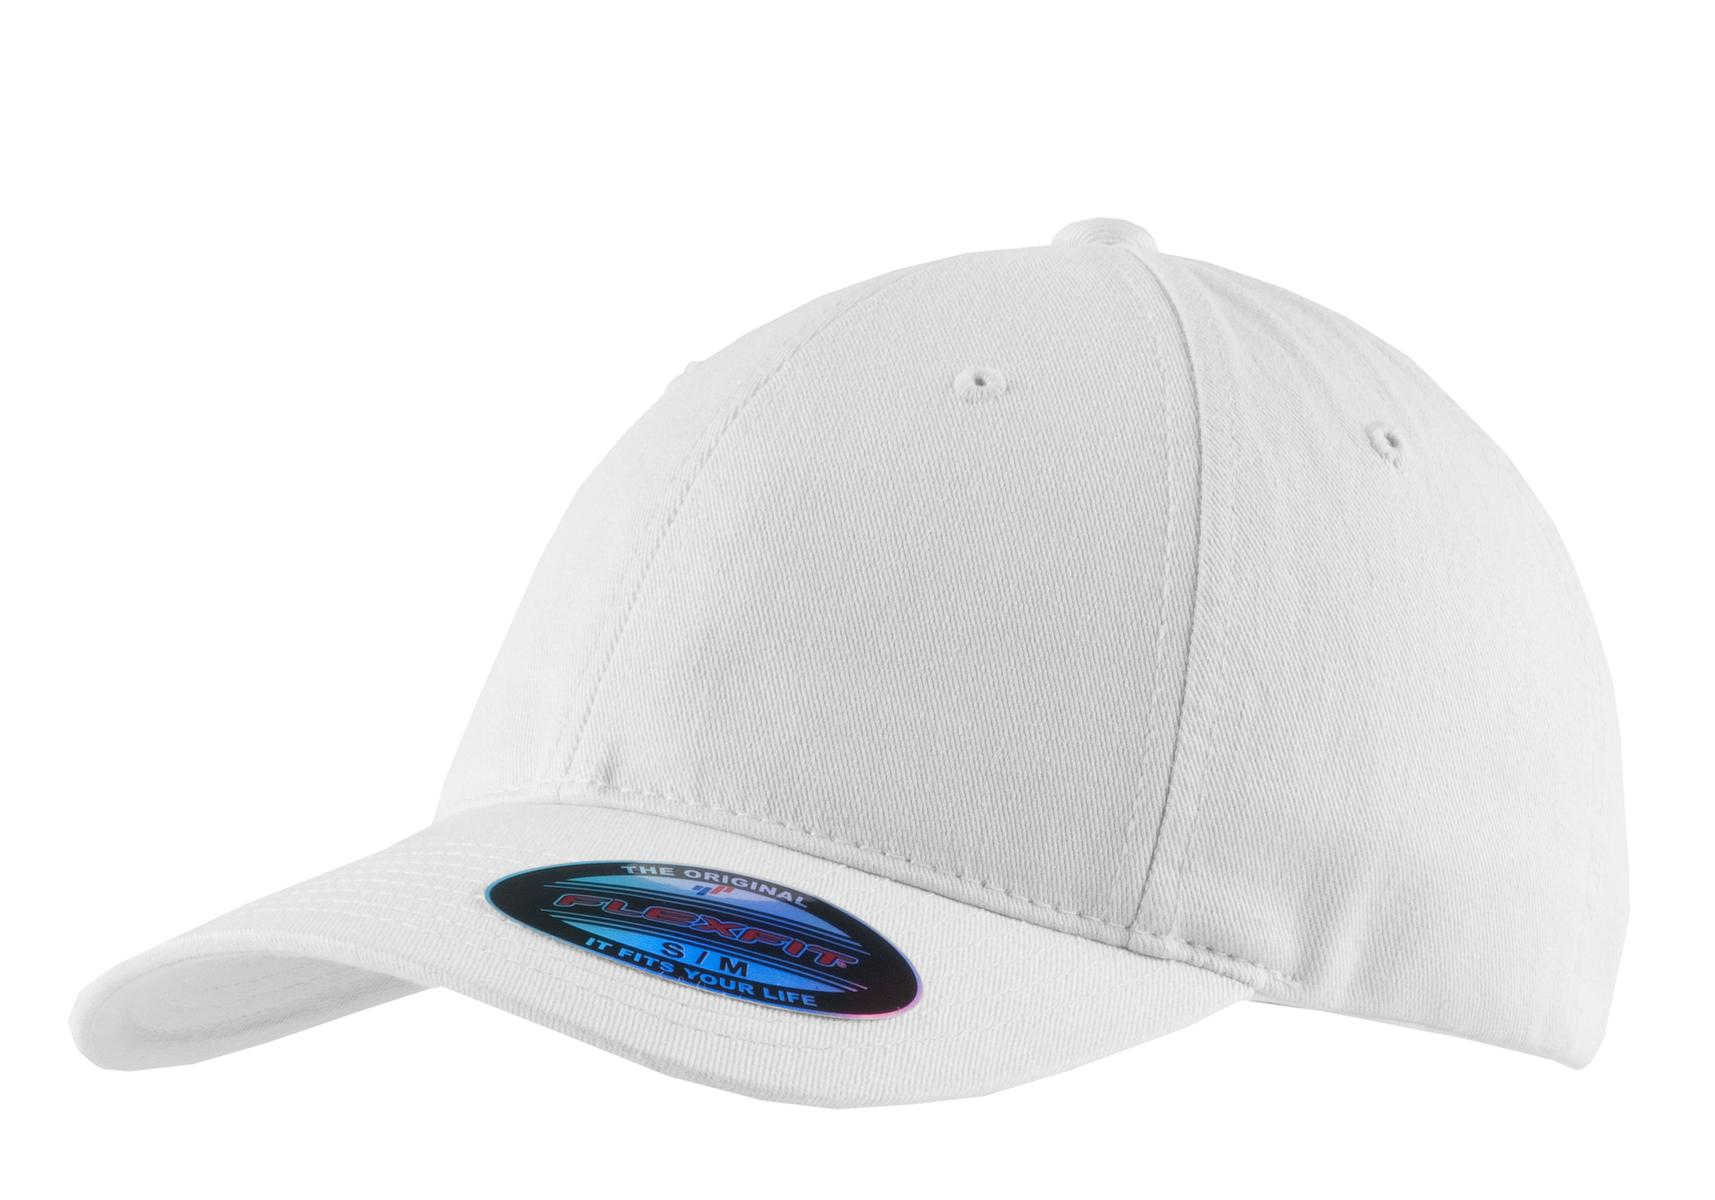 Port Authority ®  Flexfit ®  Garment-Washed Cap. C809 - White